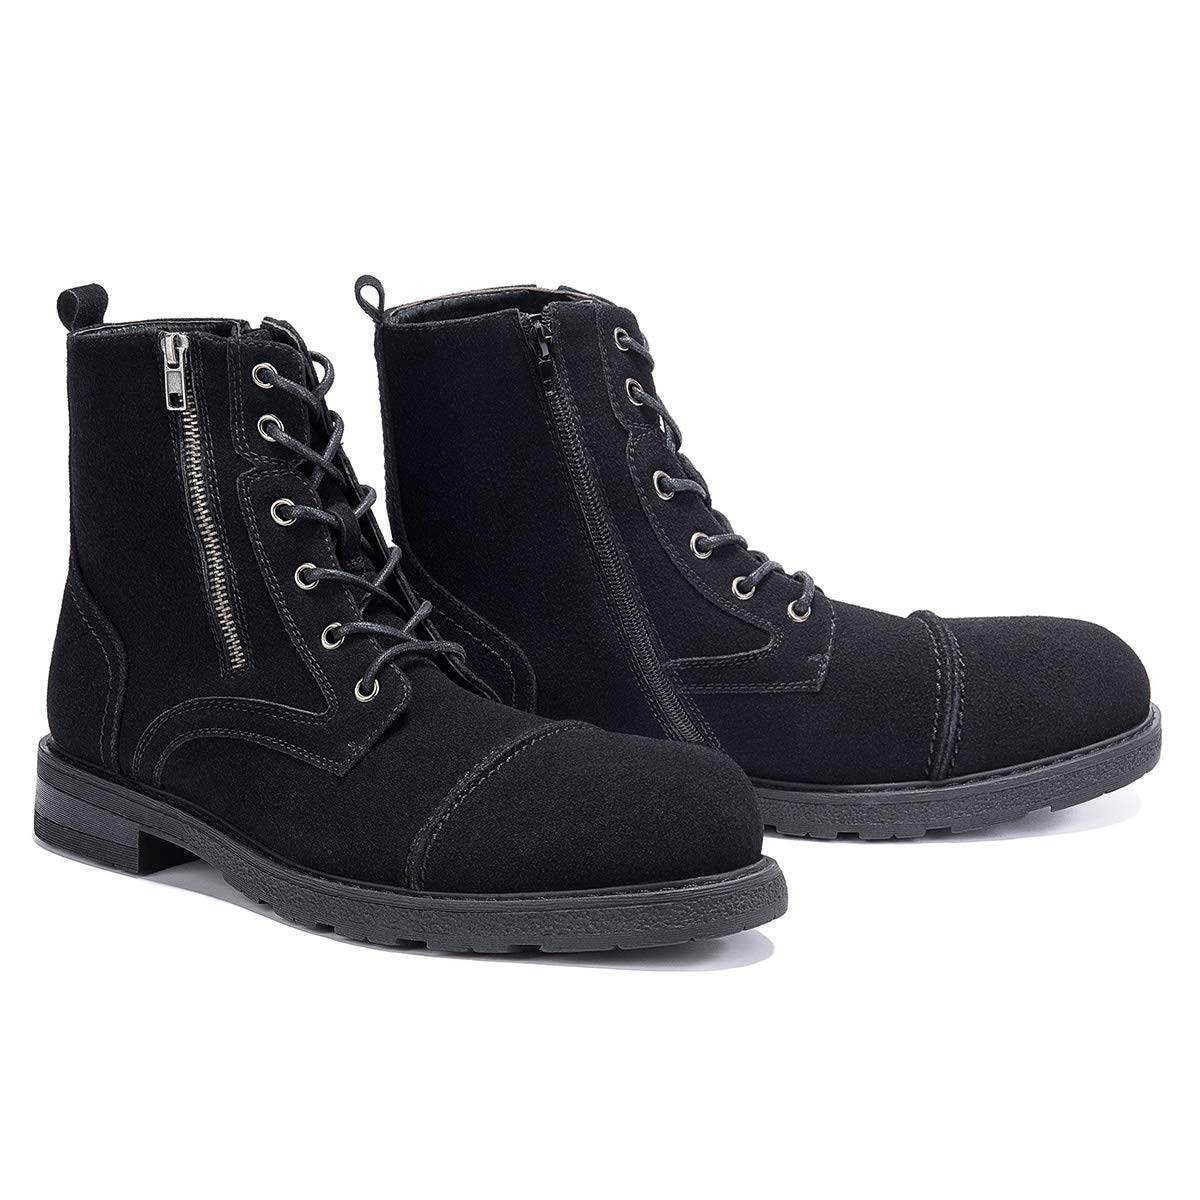 GM GOLAIMAN Men's Combat Boots-Suede Boots Adjustable Lace Up Zip Cap Toe for Work Hiking Motorcycle Military Tactical black-12 by GM GOLAIMAN